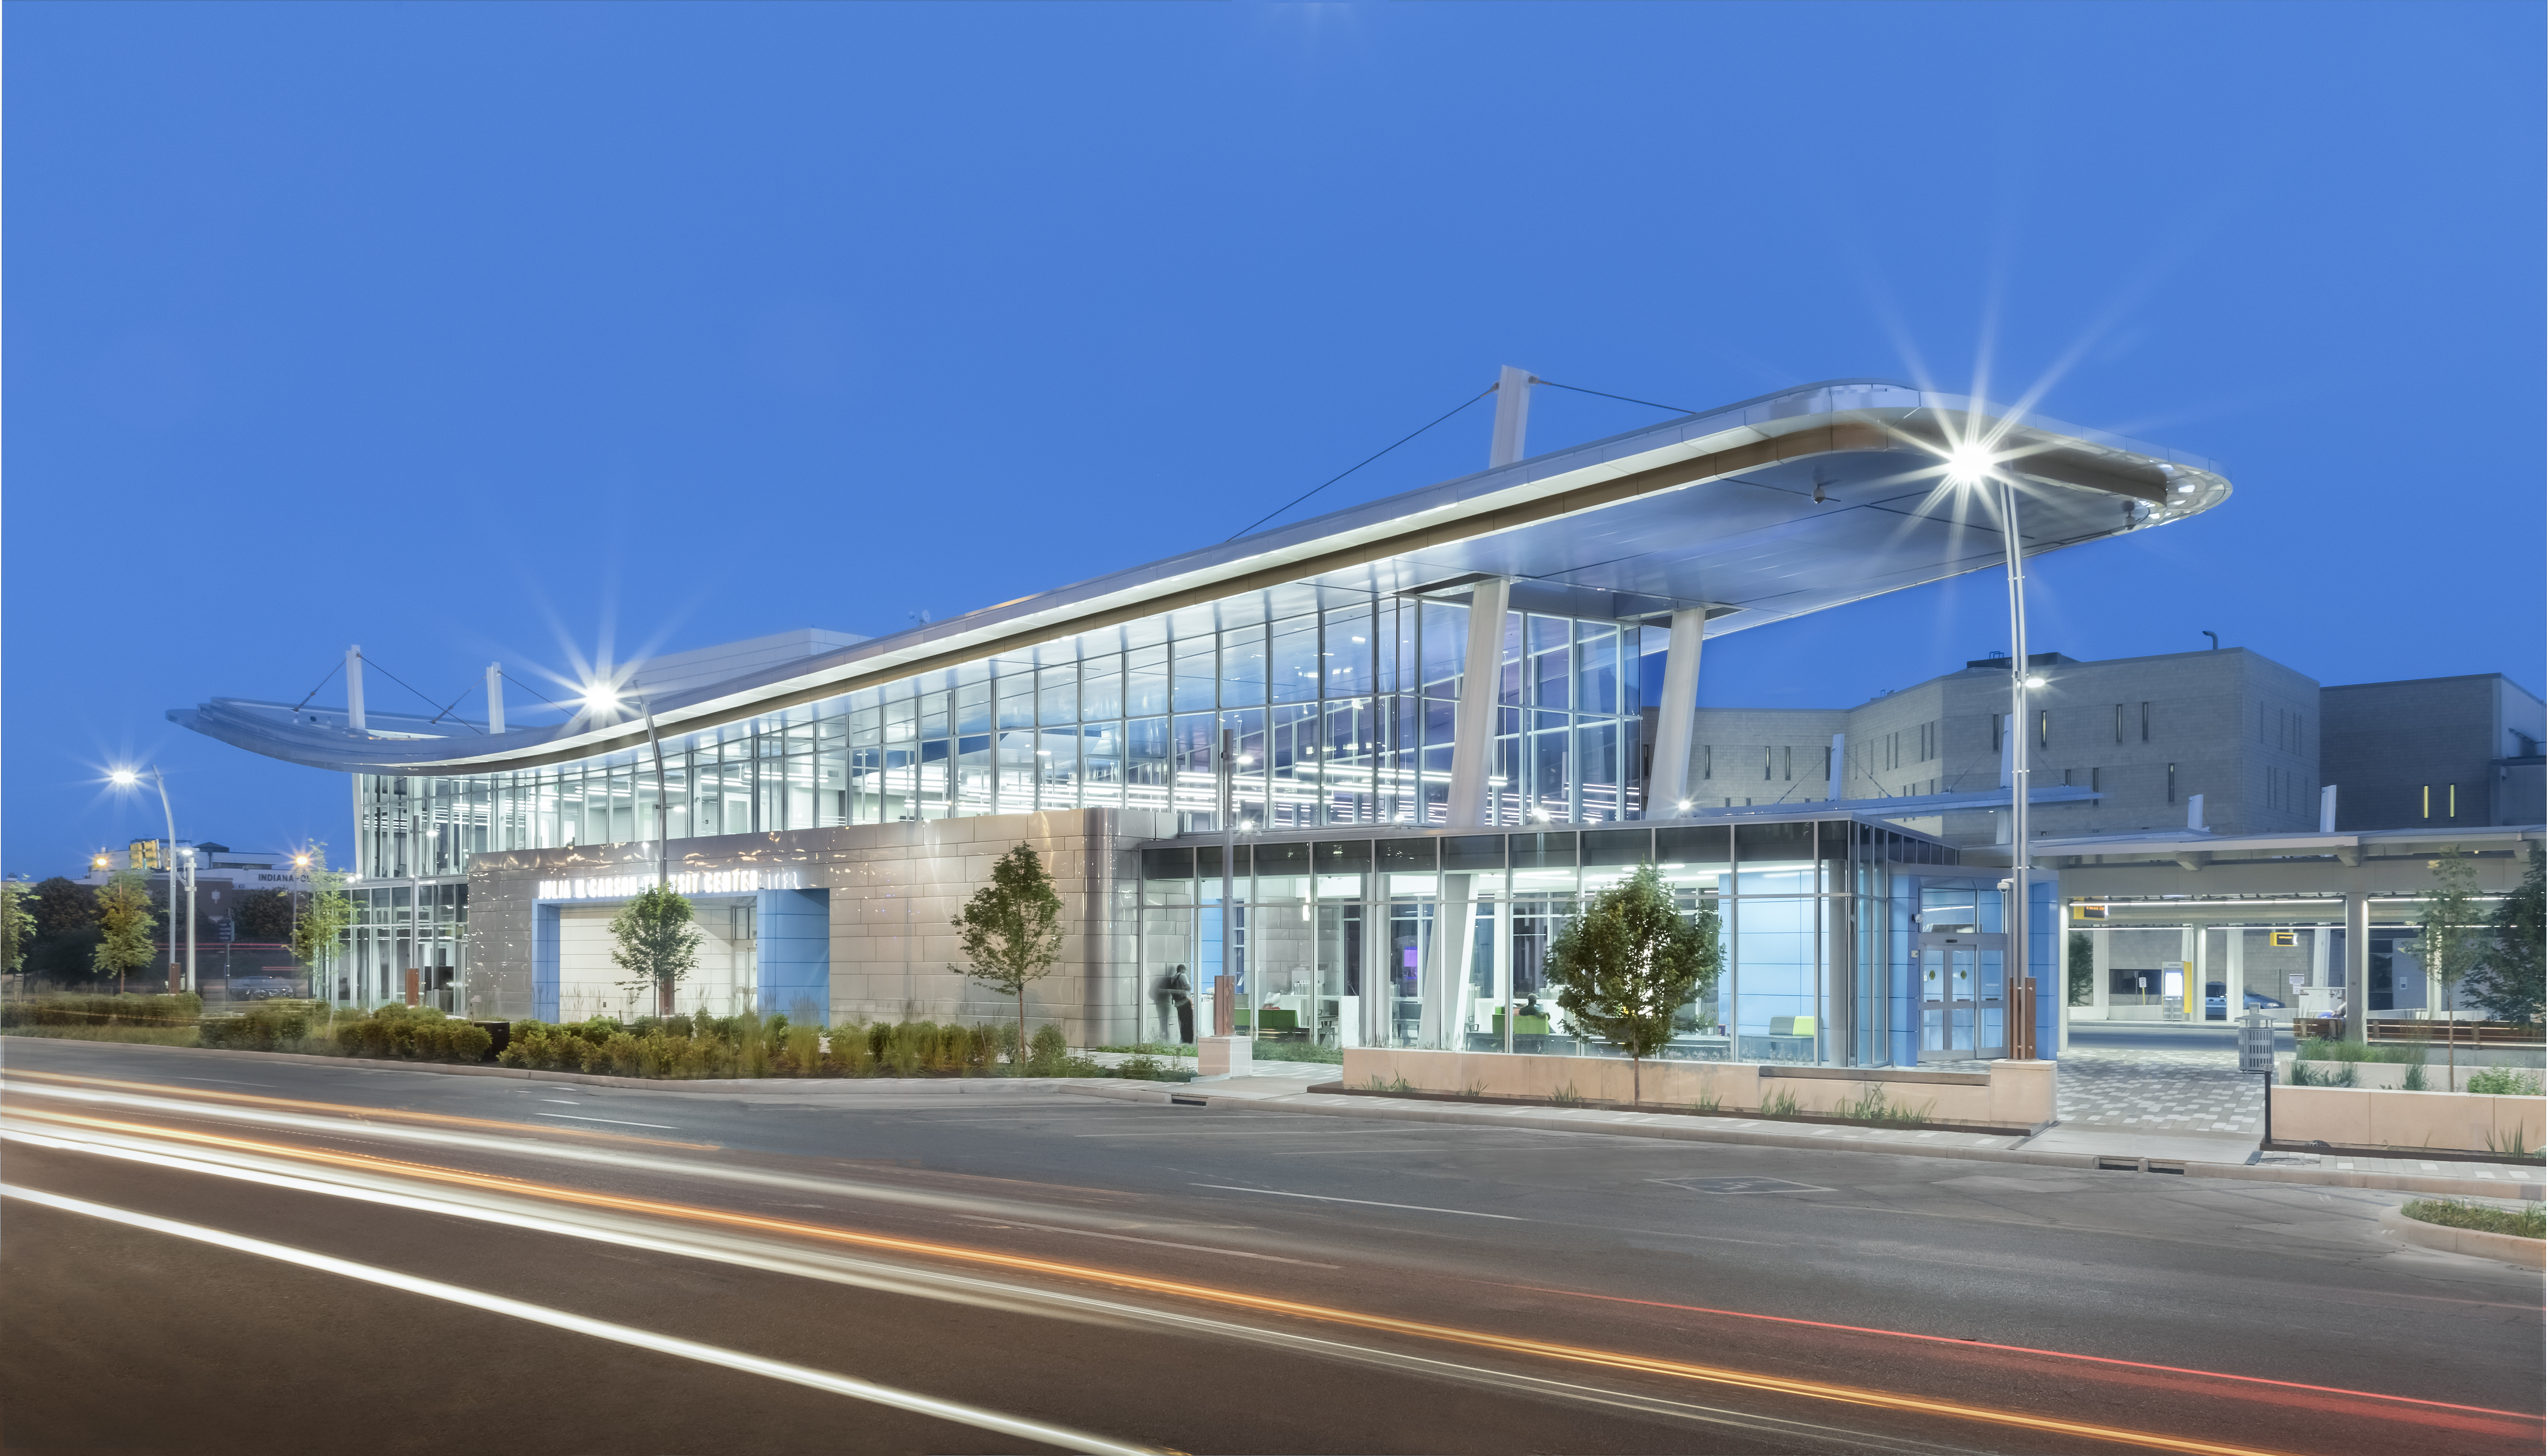 2017 awards Julia M. Carson Transit Center Northwest Perspective